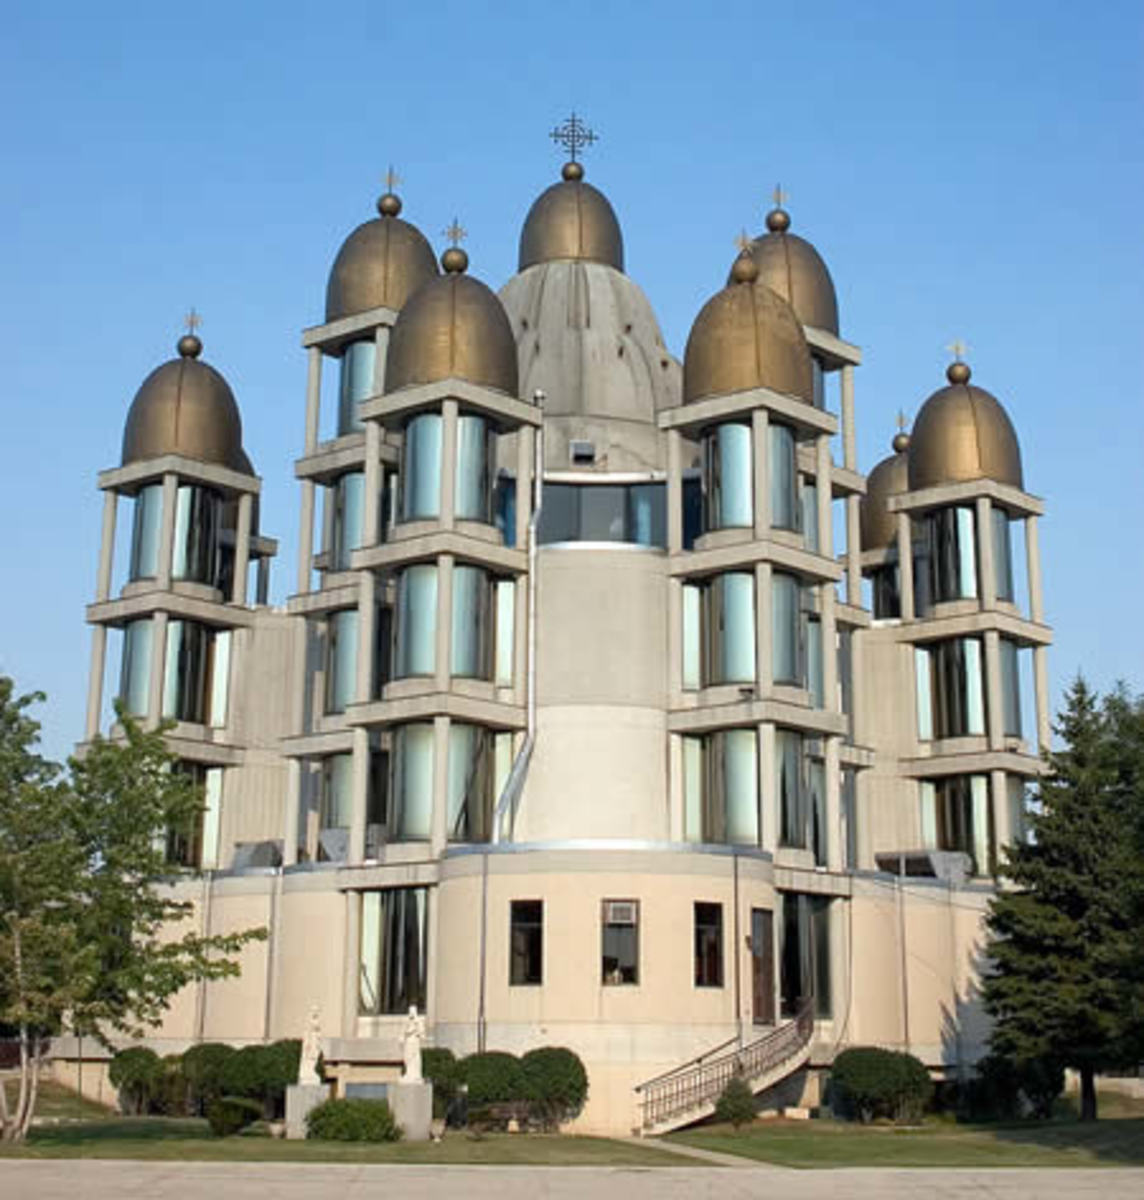 St. Joseph Church: Known for the 13 golden domes.